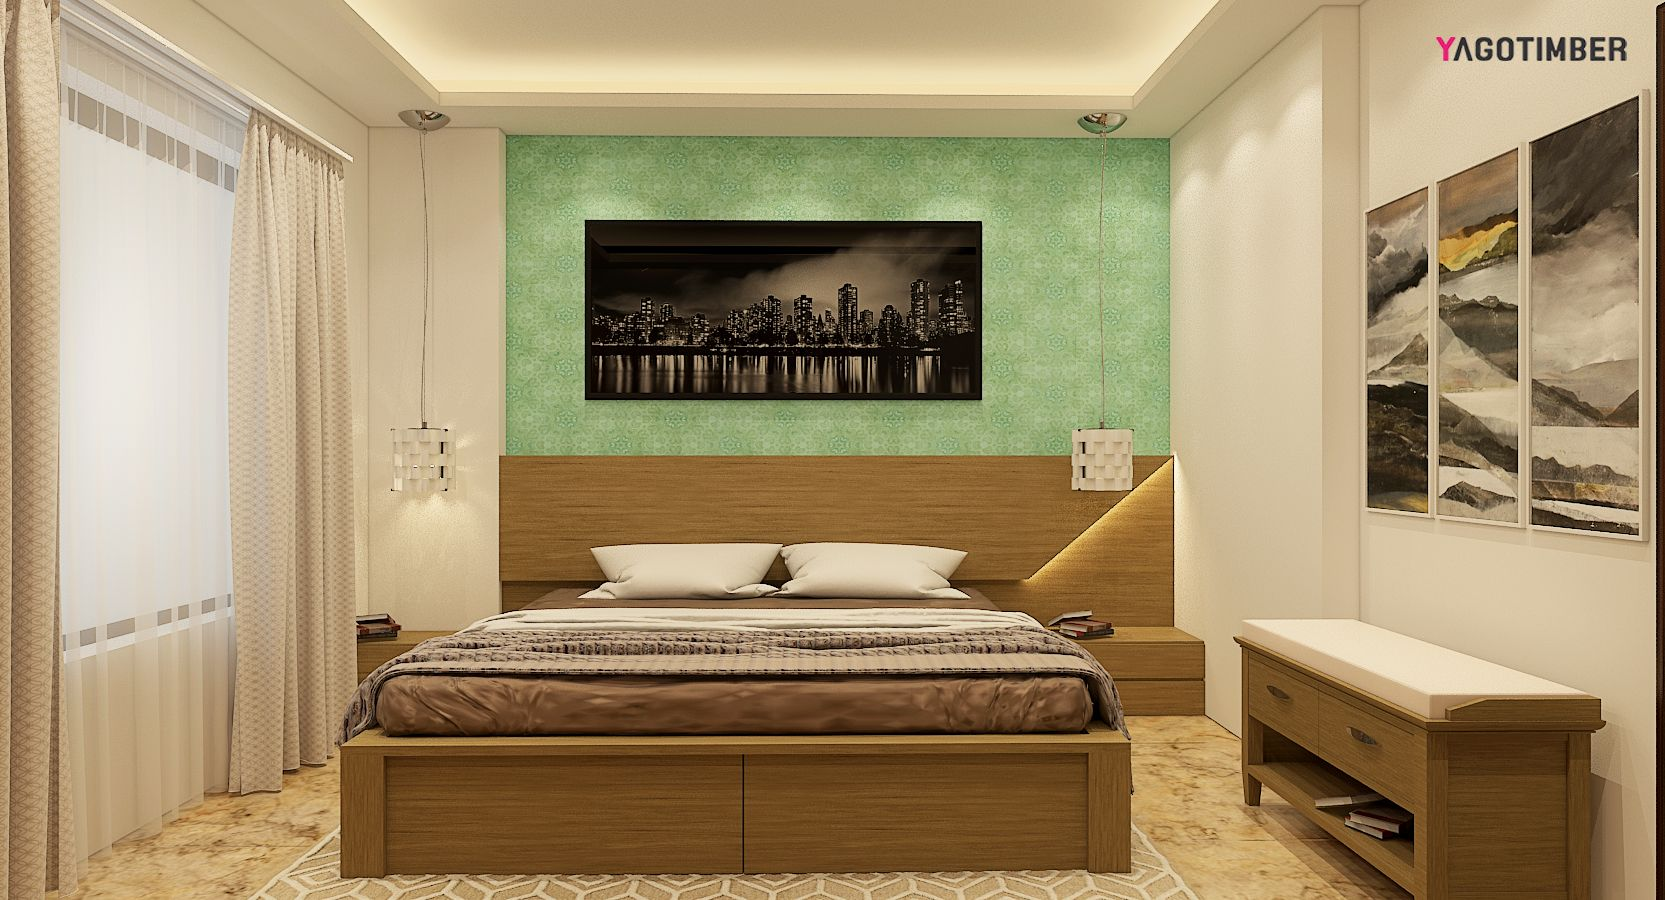 Designing Bedroom Design Is A Balance Between Form & Function It Takes Two